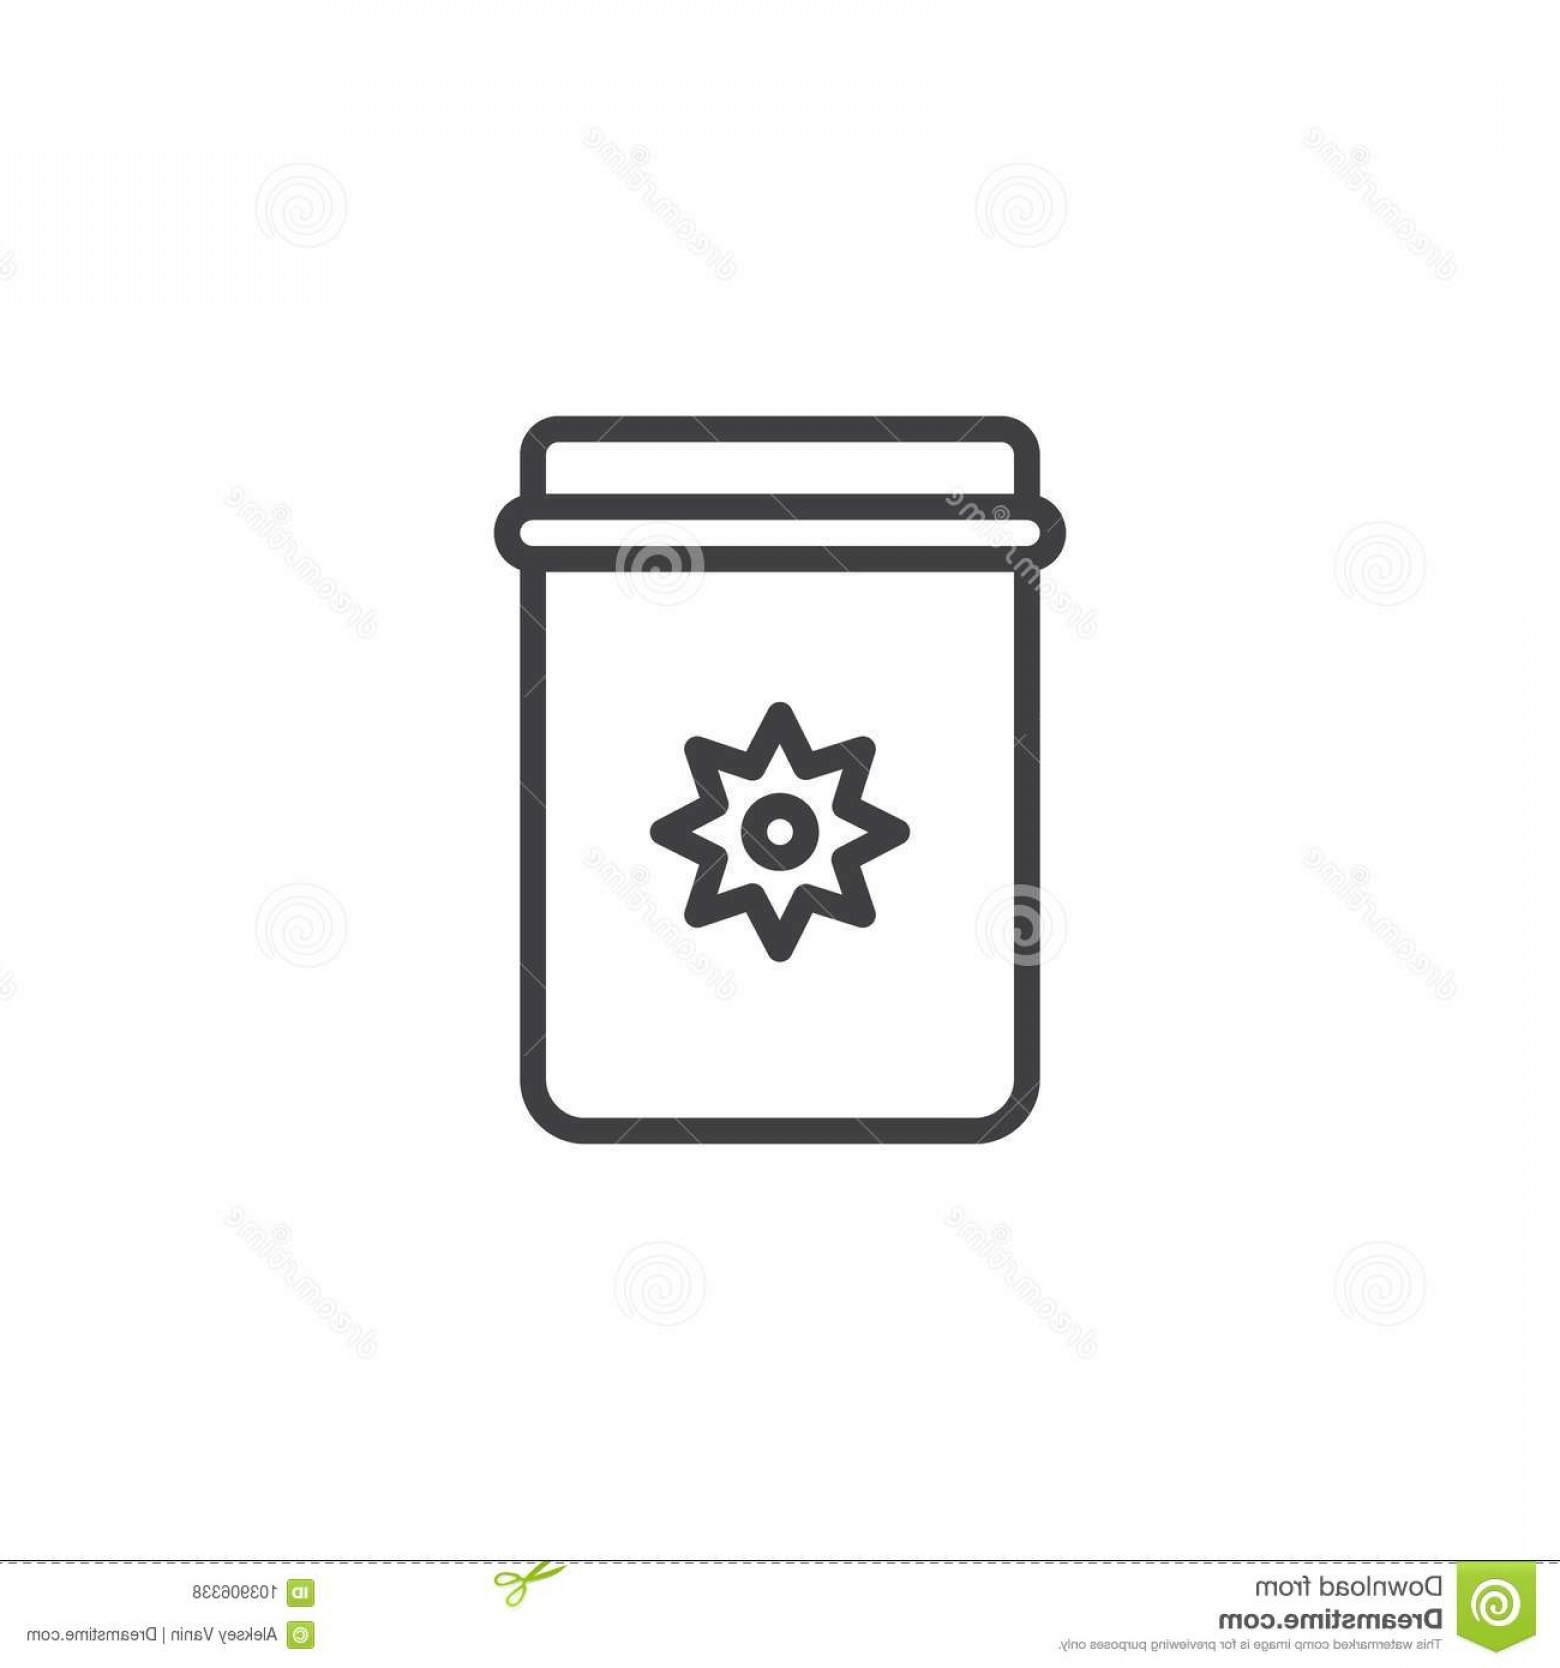 Mason Jar Outline Vector: Mason Jar Christmas Decoration Star Line Icon Mason Jar Christmas Decoration Star Line Icon Outline Vector Sign Linear Image